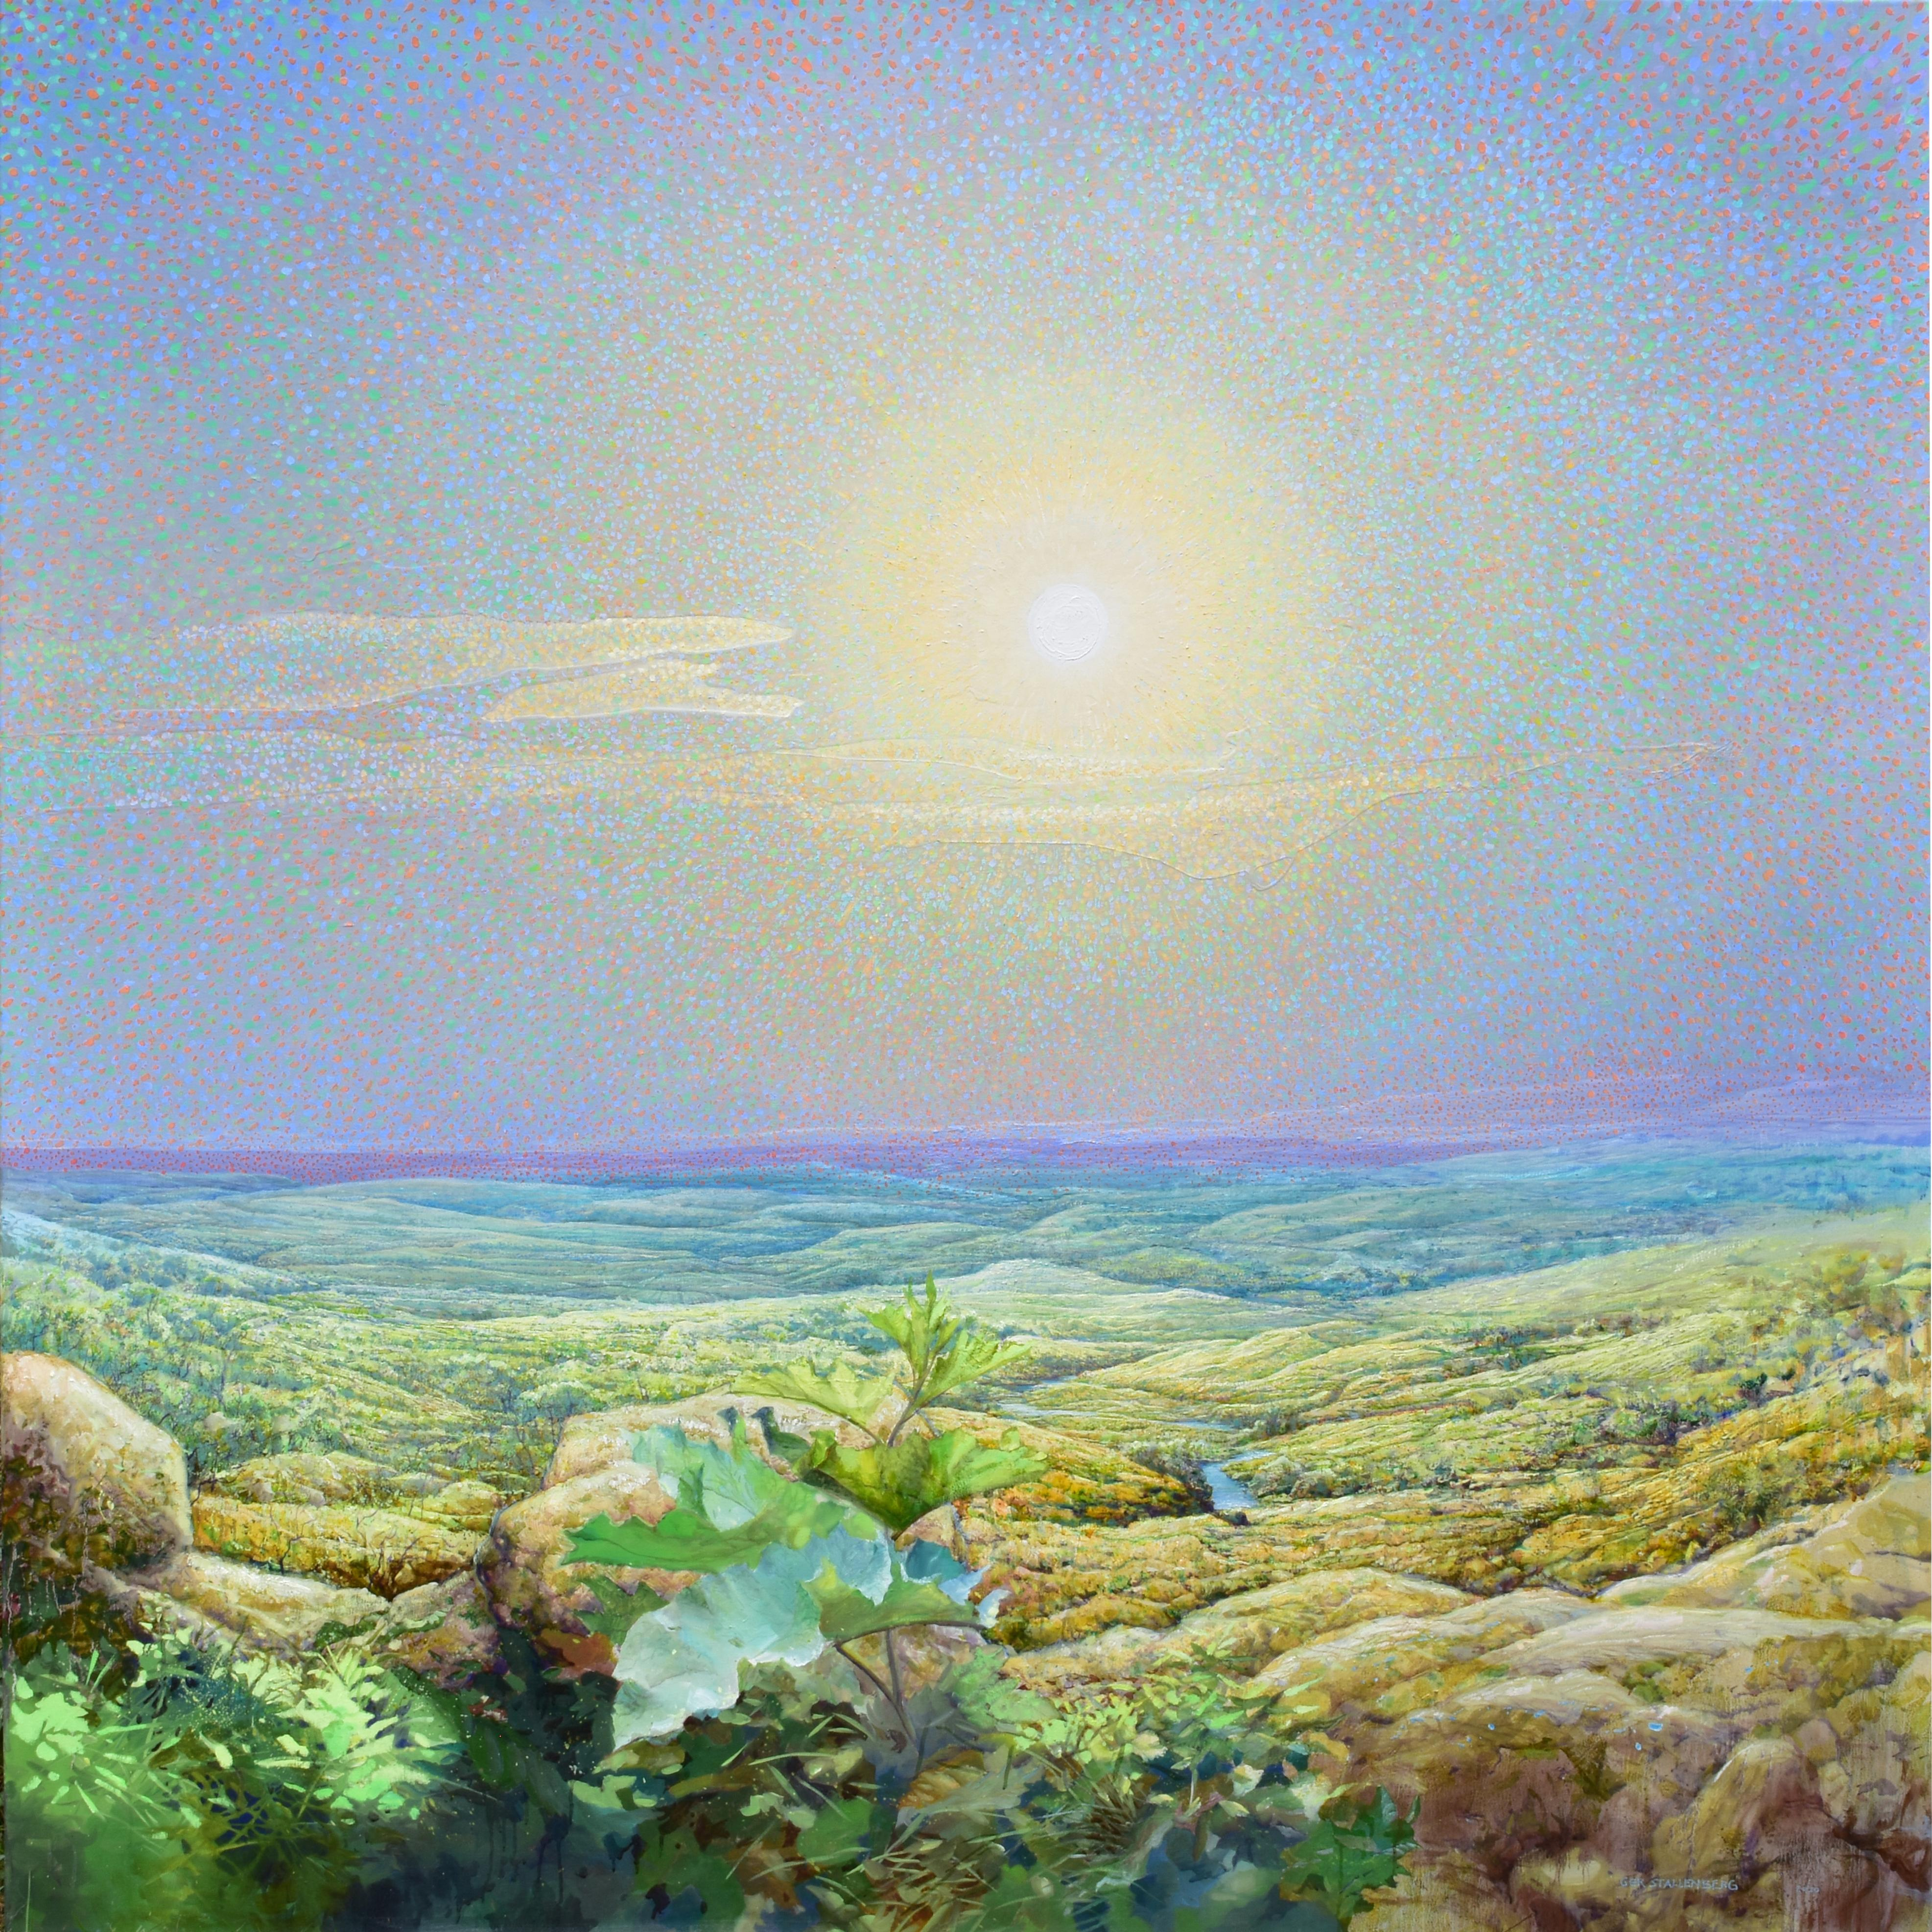 Helios - 21st Century Contemporary Colorful Impressionistic Landscape Painting